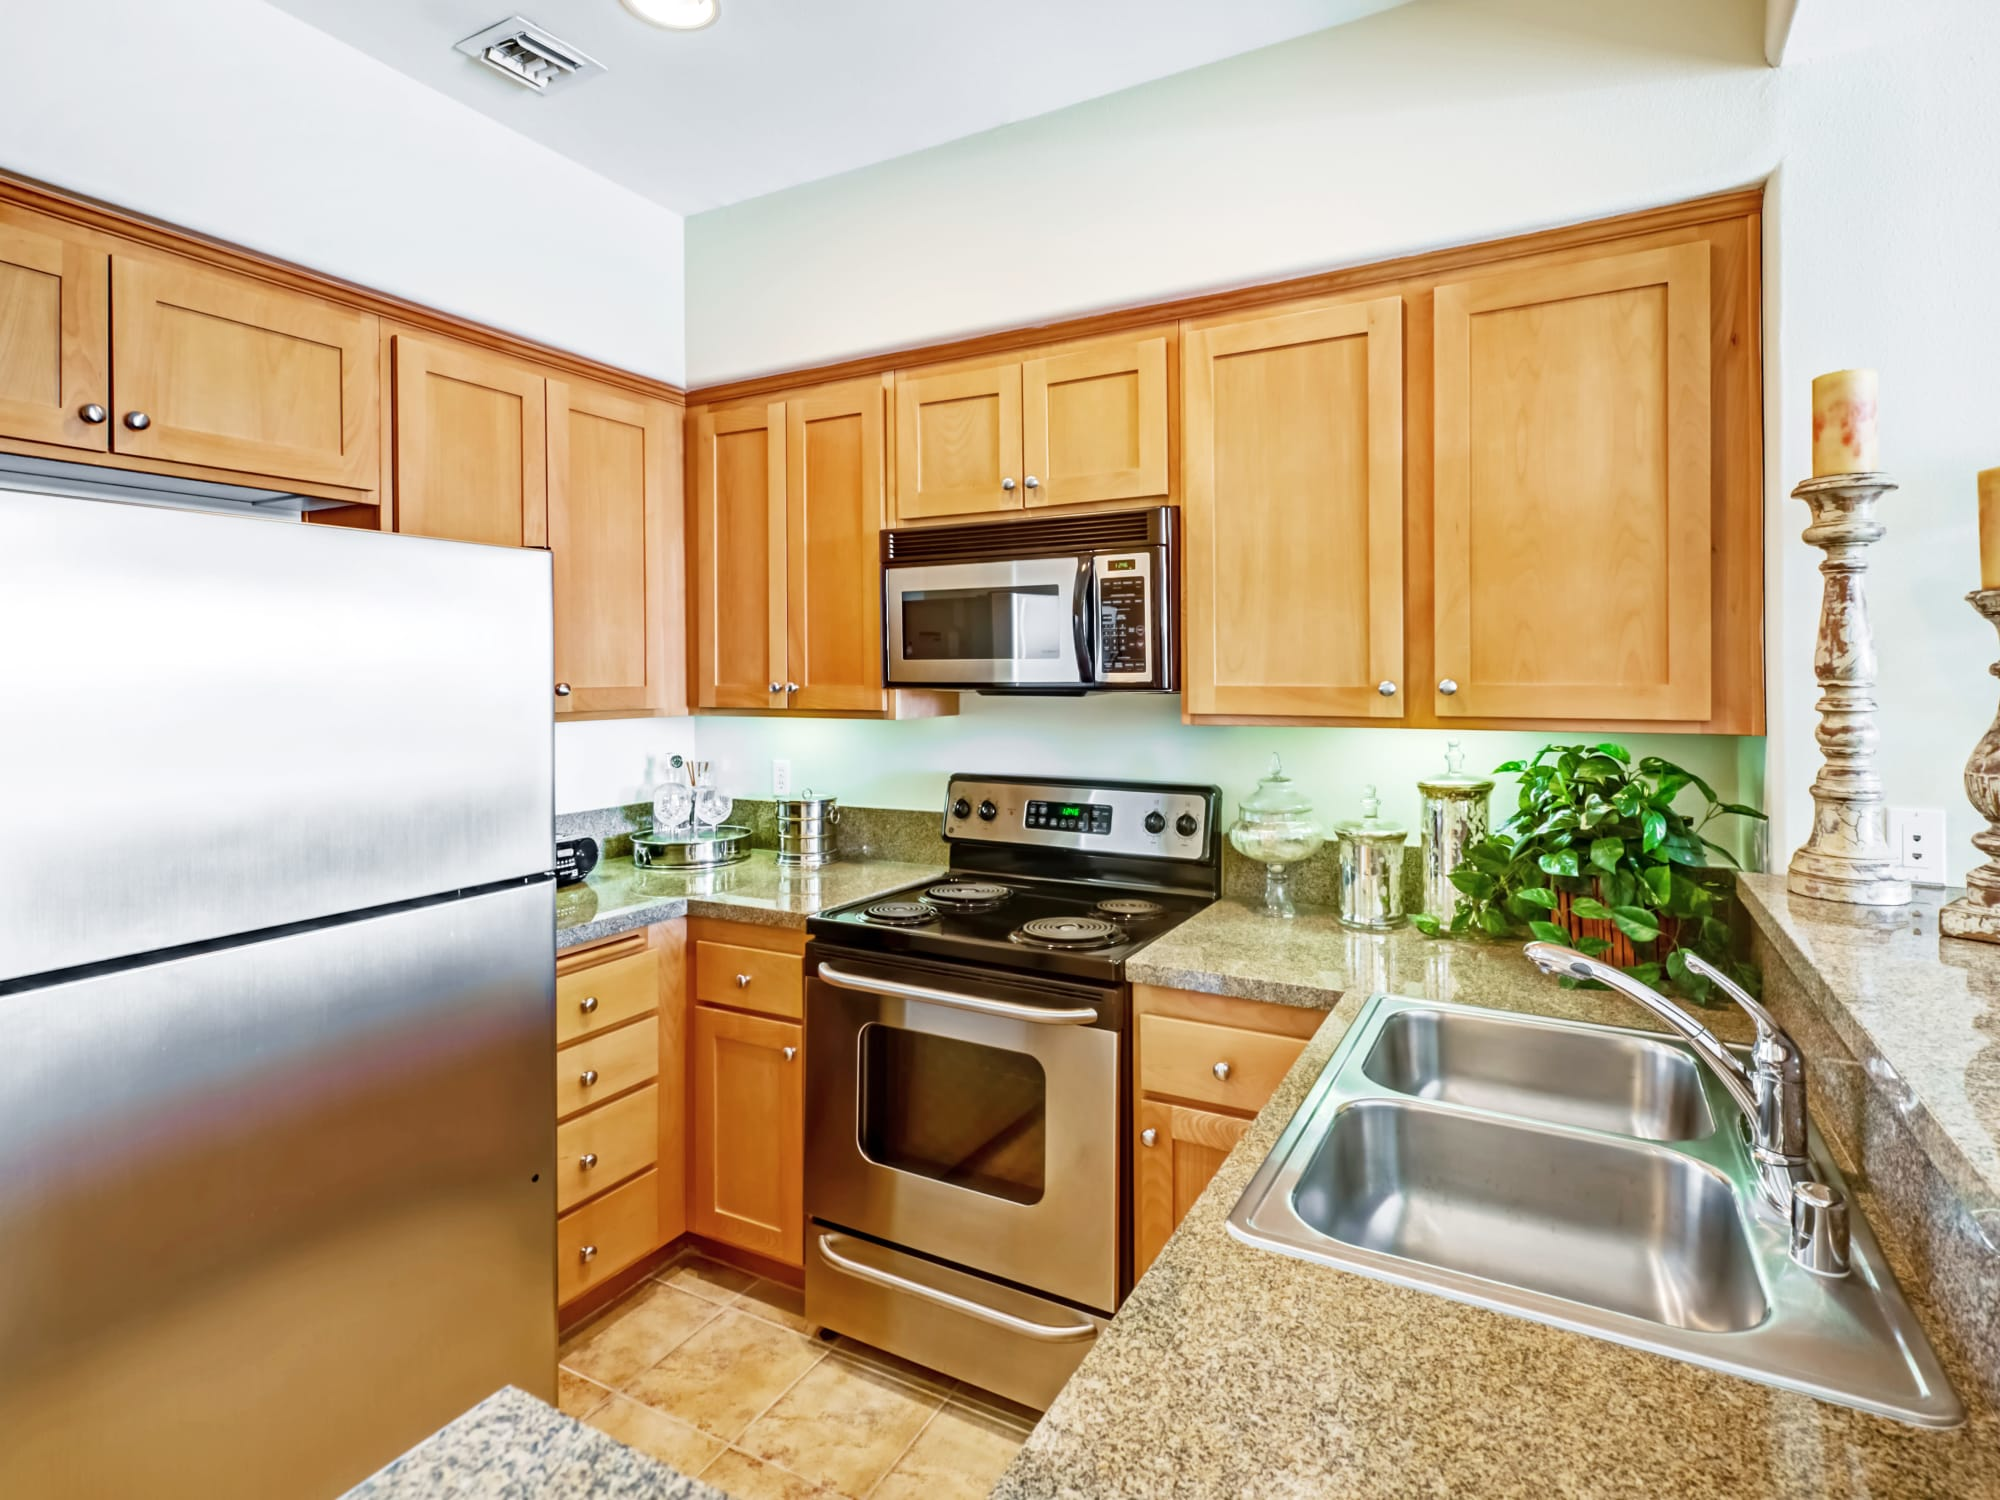 Modern kitchen with stainless-steel appliances in a model home at The Villa at Marina Harbor in Marina del Rey, California